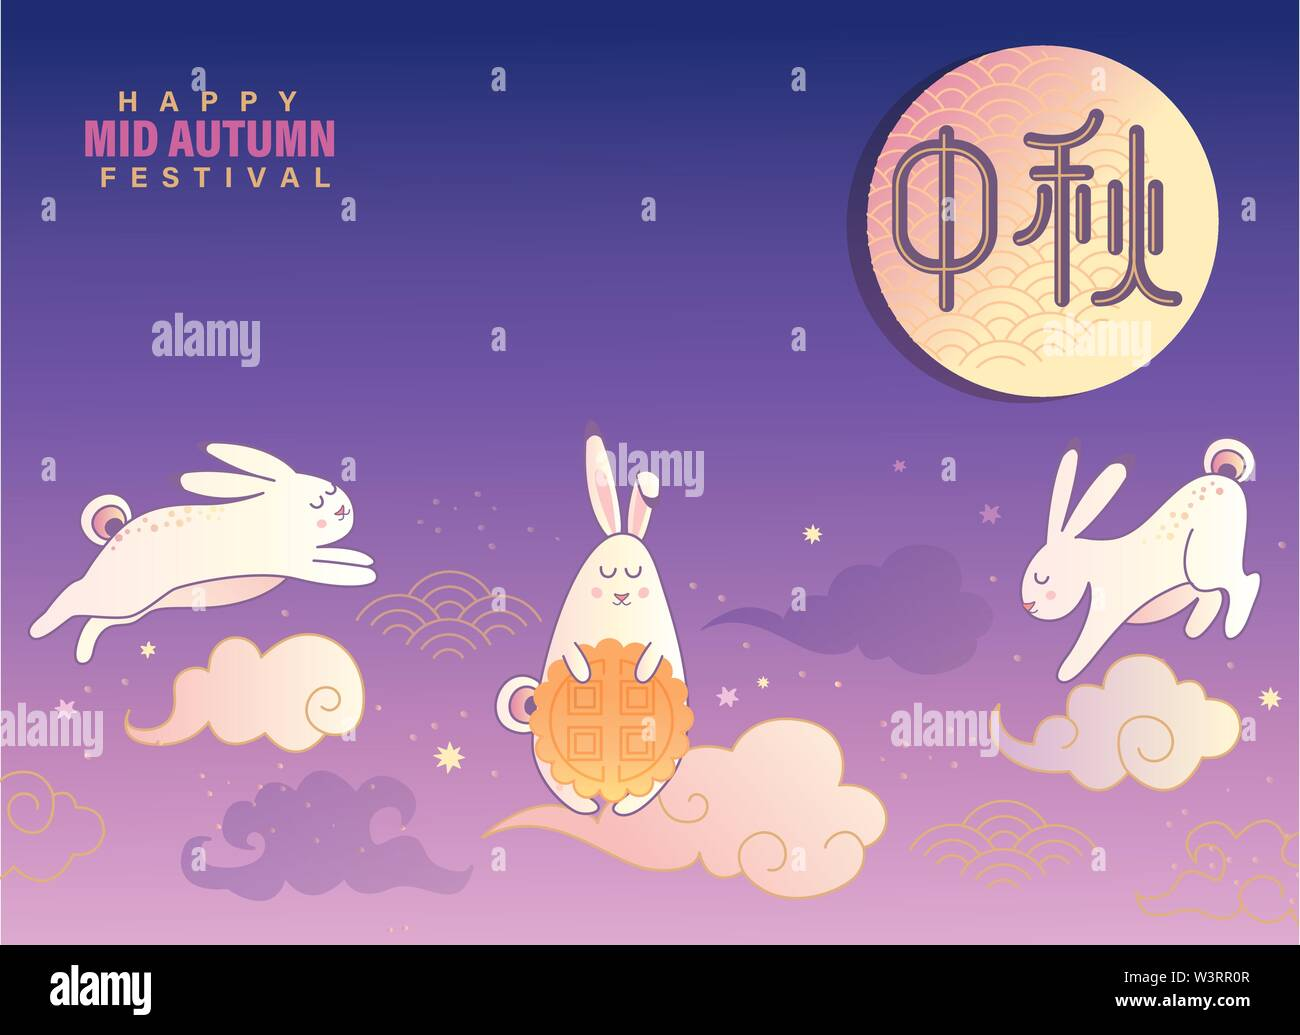 Mid Autumn Festival banner with rabbits on clouds. - Stock Image